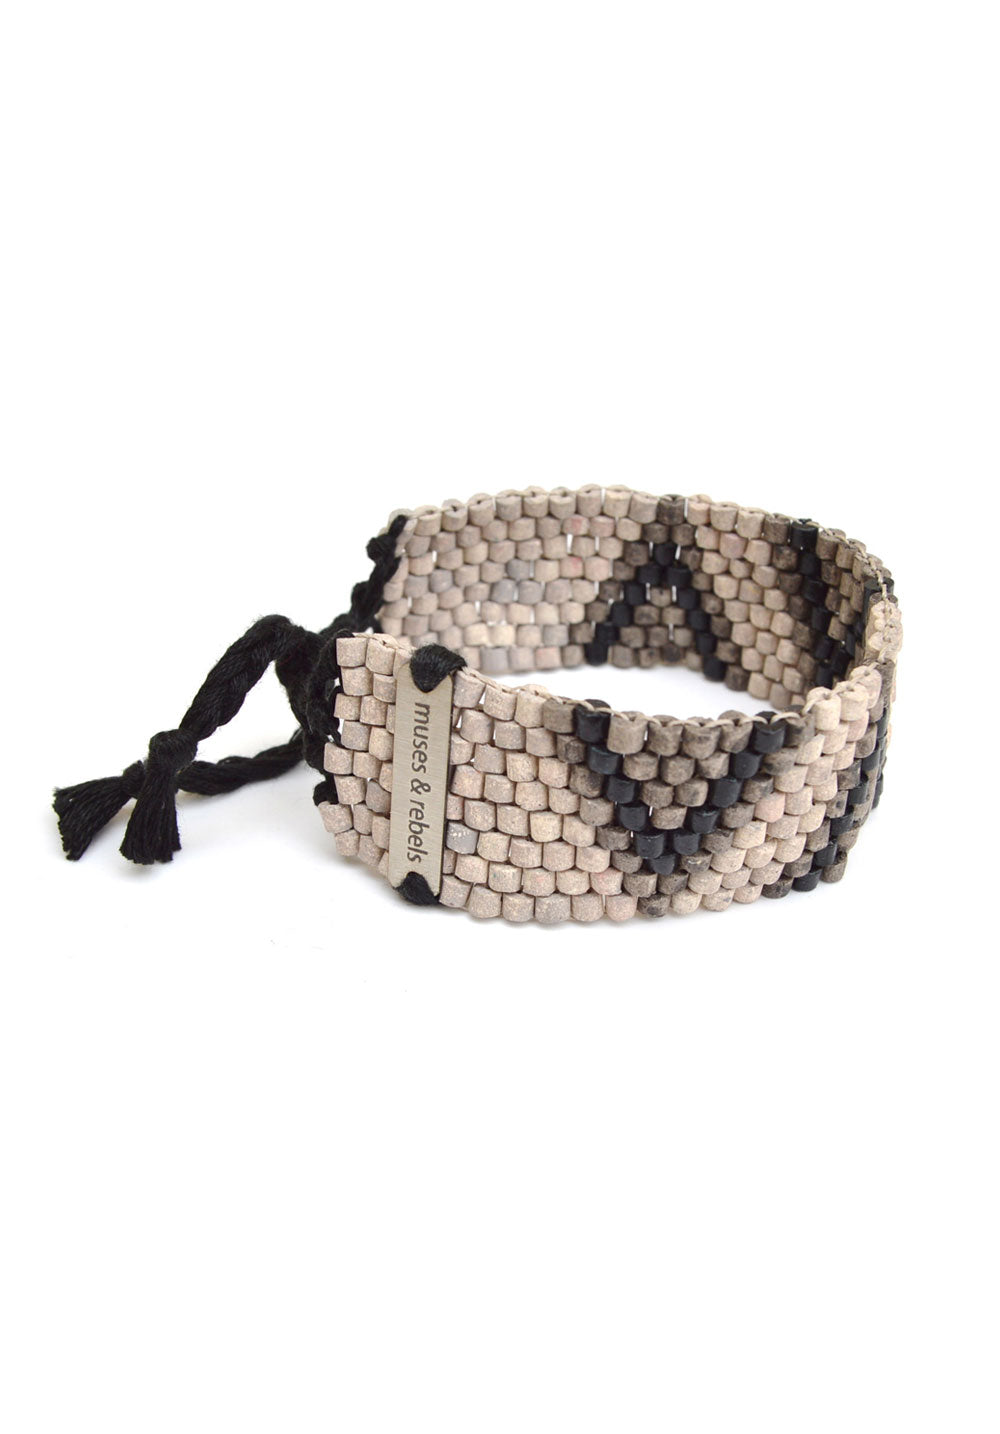 peyote stitch bracelet - ash triangles